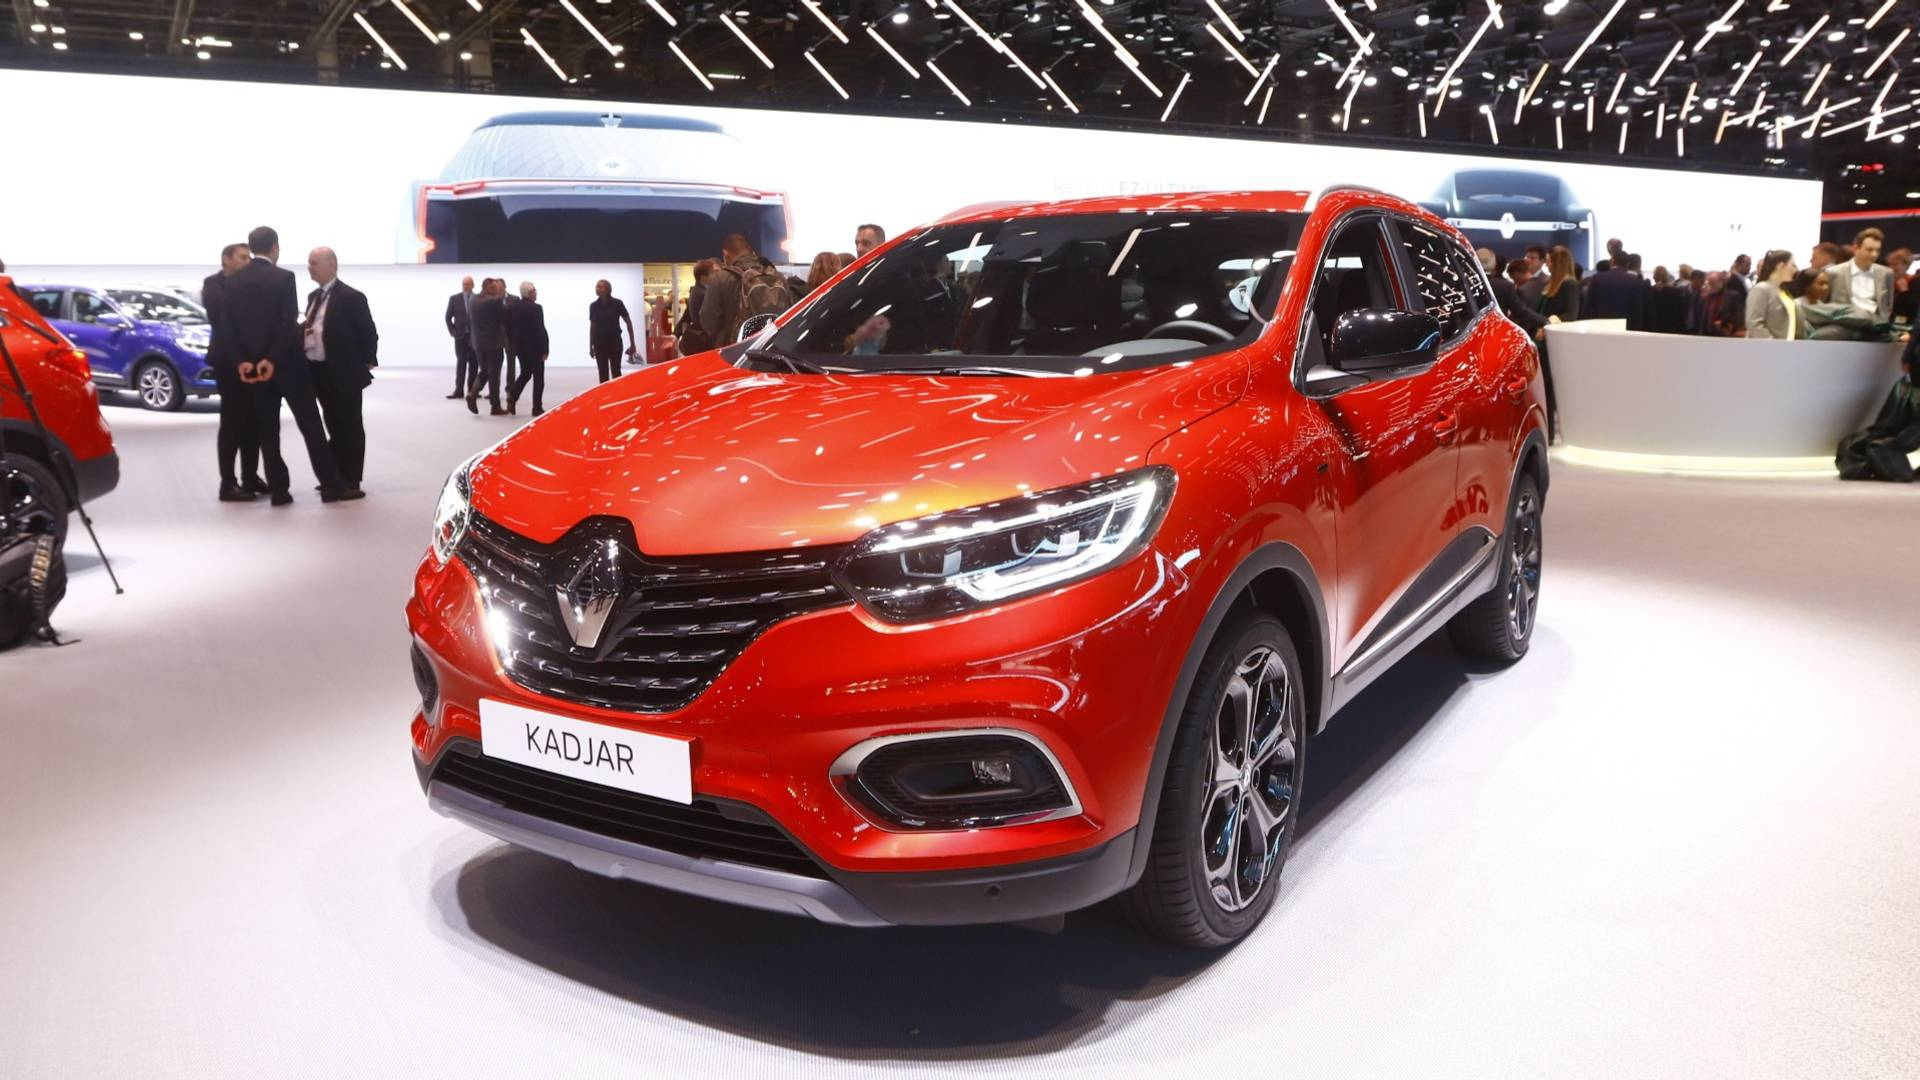 Renault Kadjar Brings Its Subtle Facelift To Paris Motor Show